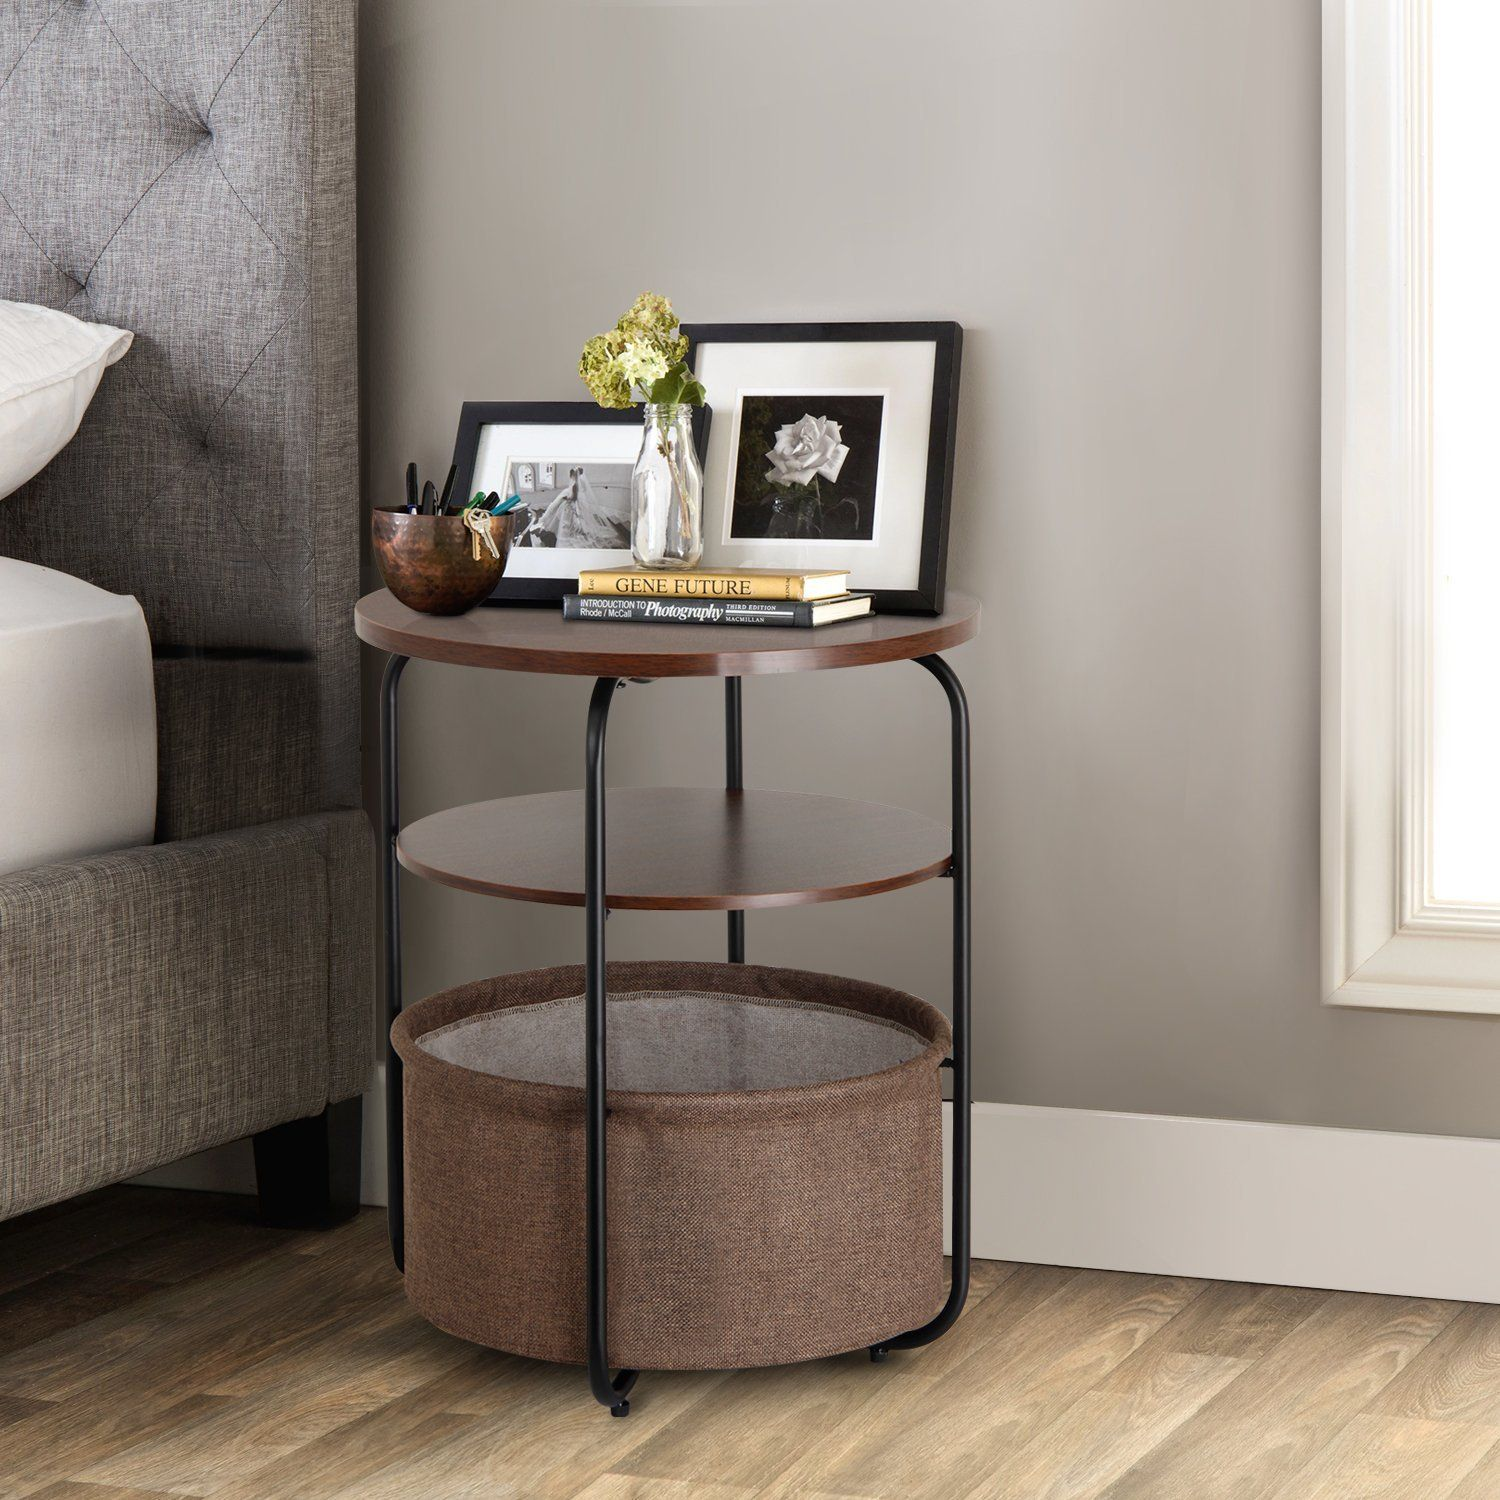 Amazon Com Lifewit 3 Tier Round Side End Table With Storage Basket Nightstand Espress Small Round Side Table Table Decor Living Room End Tables With Storage [ 1500 x 1500 Pixel ]